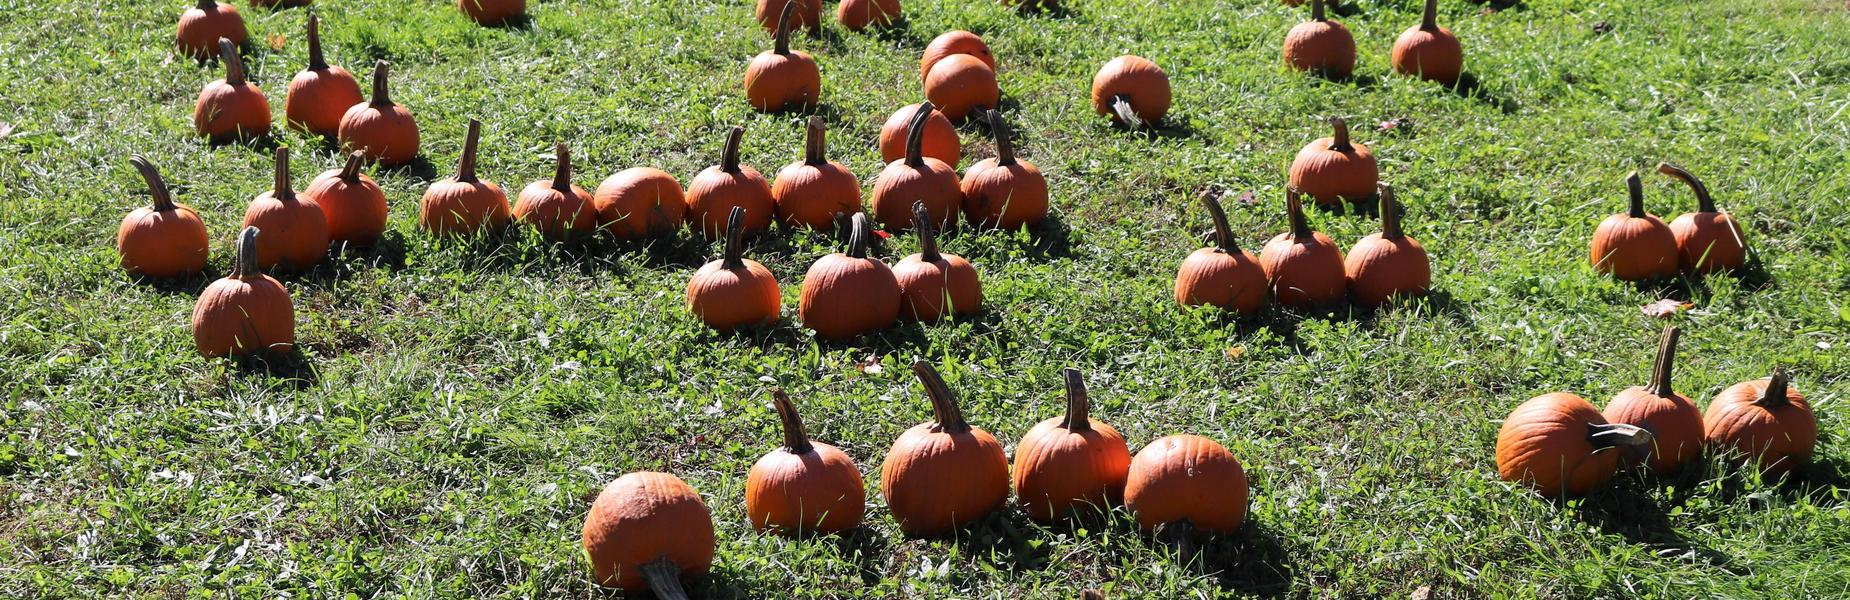 The Lincoln School Pumpkin Patch is a treasured annual tradition organized by the Lincoln PTO with plenty of sunshine and lots of fun activities for the preschoolers and kindergartners on Oct. 12.  Pictured here are pumpkins in the